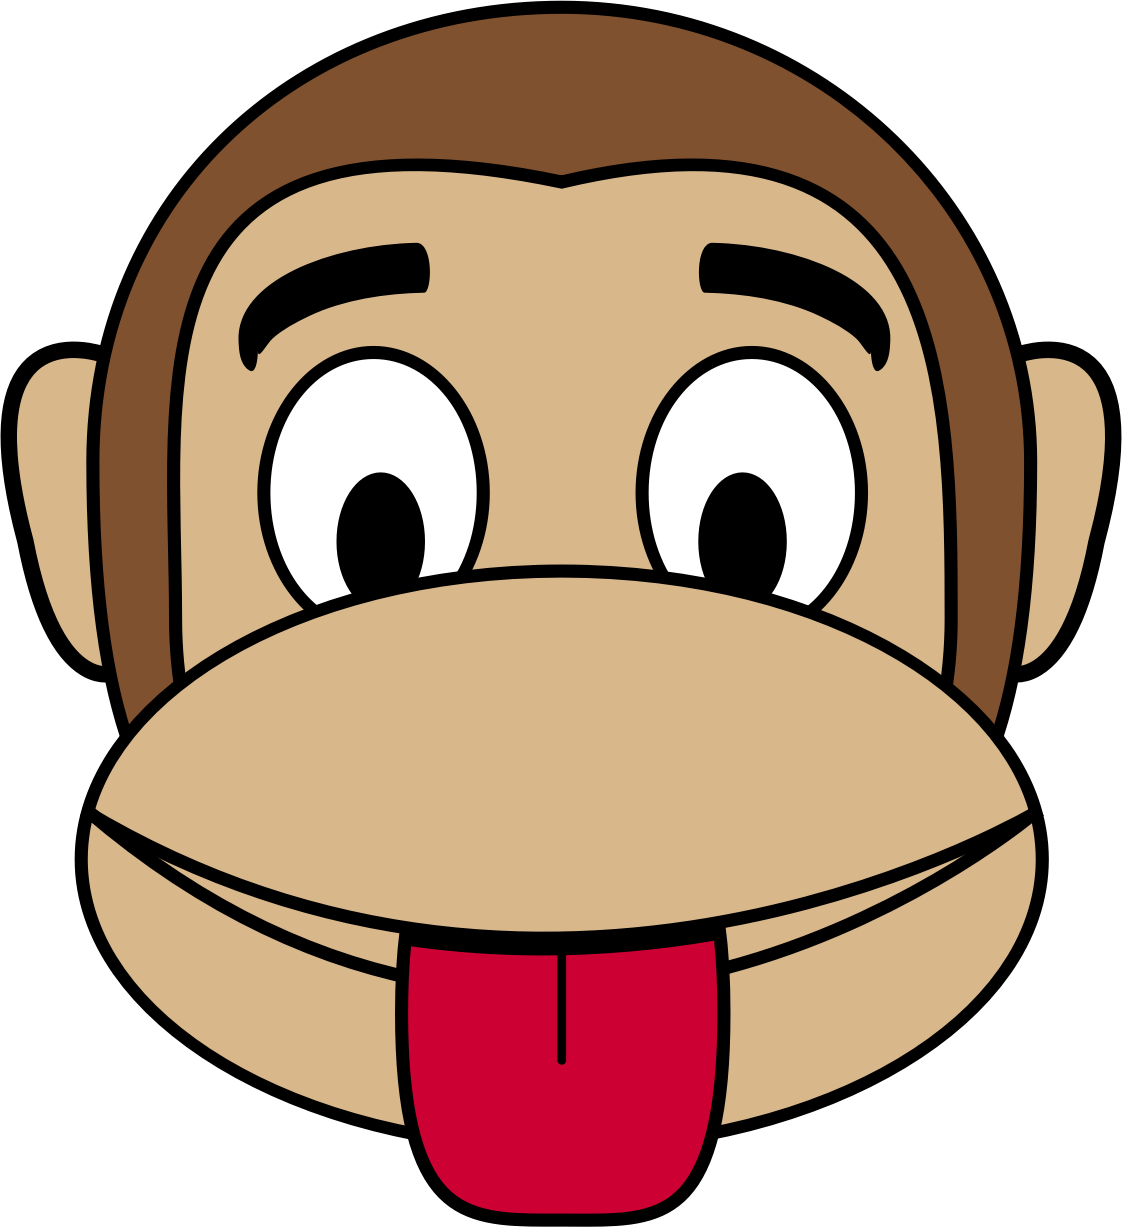 Monkey Emoji - Tongue out by buzzbomb